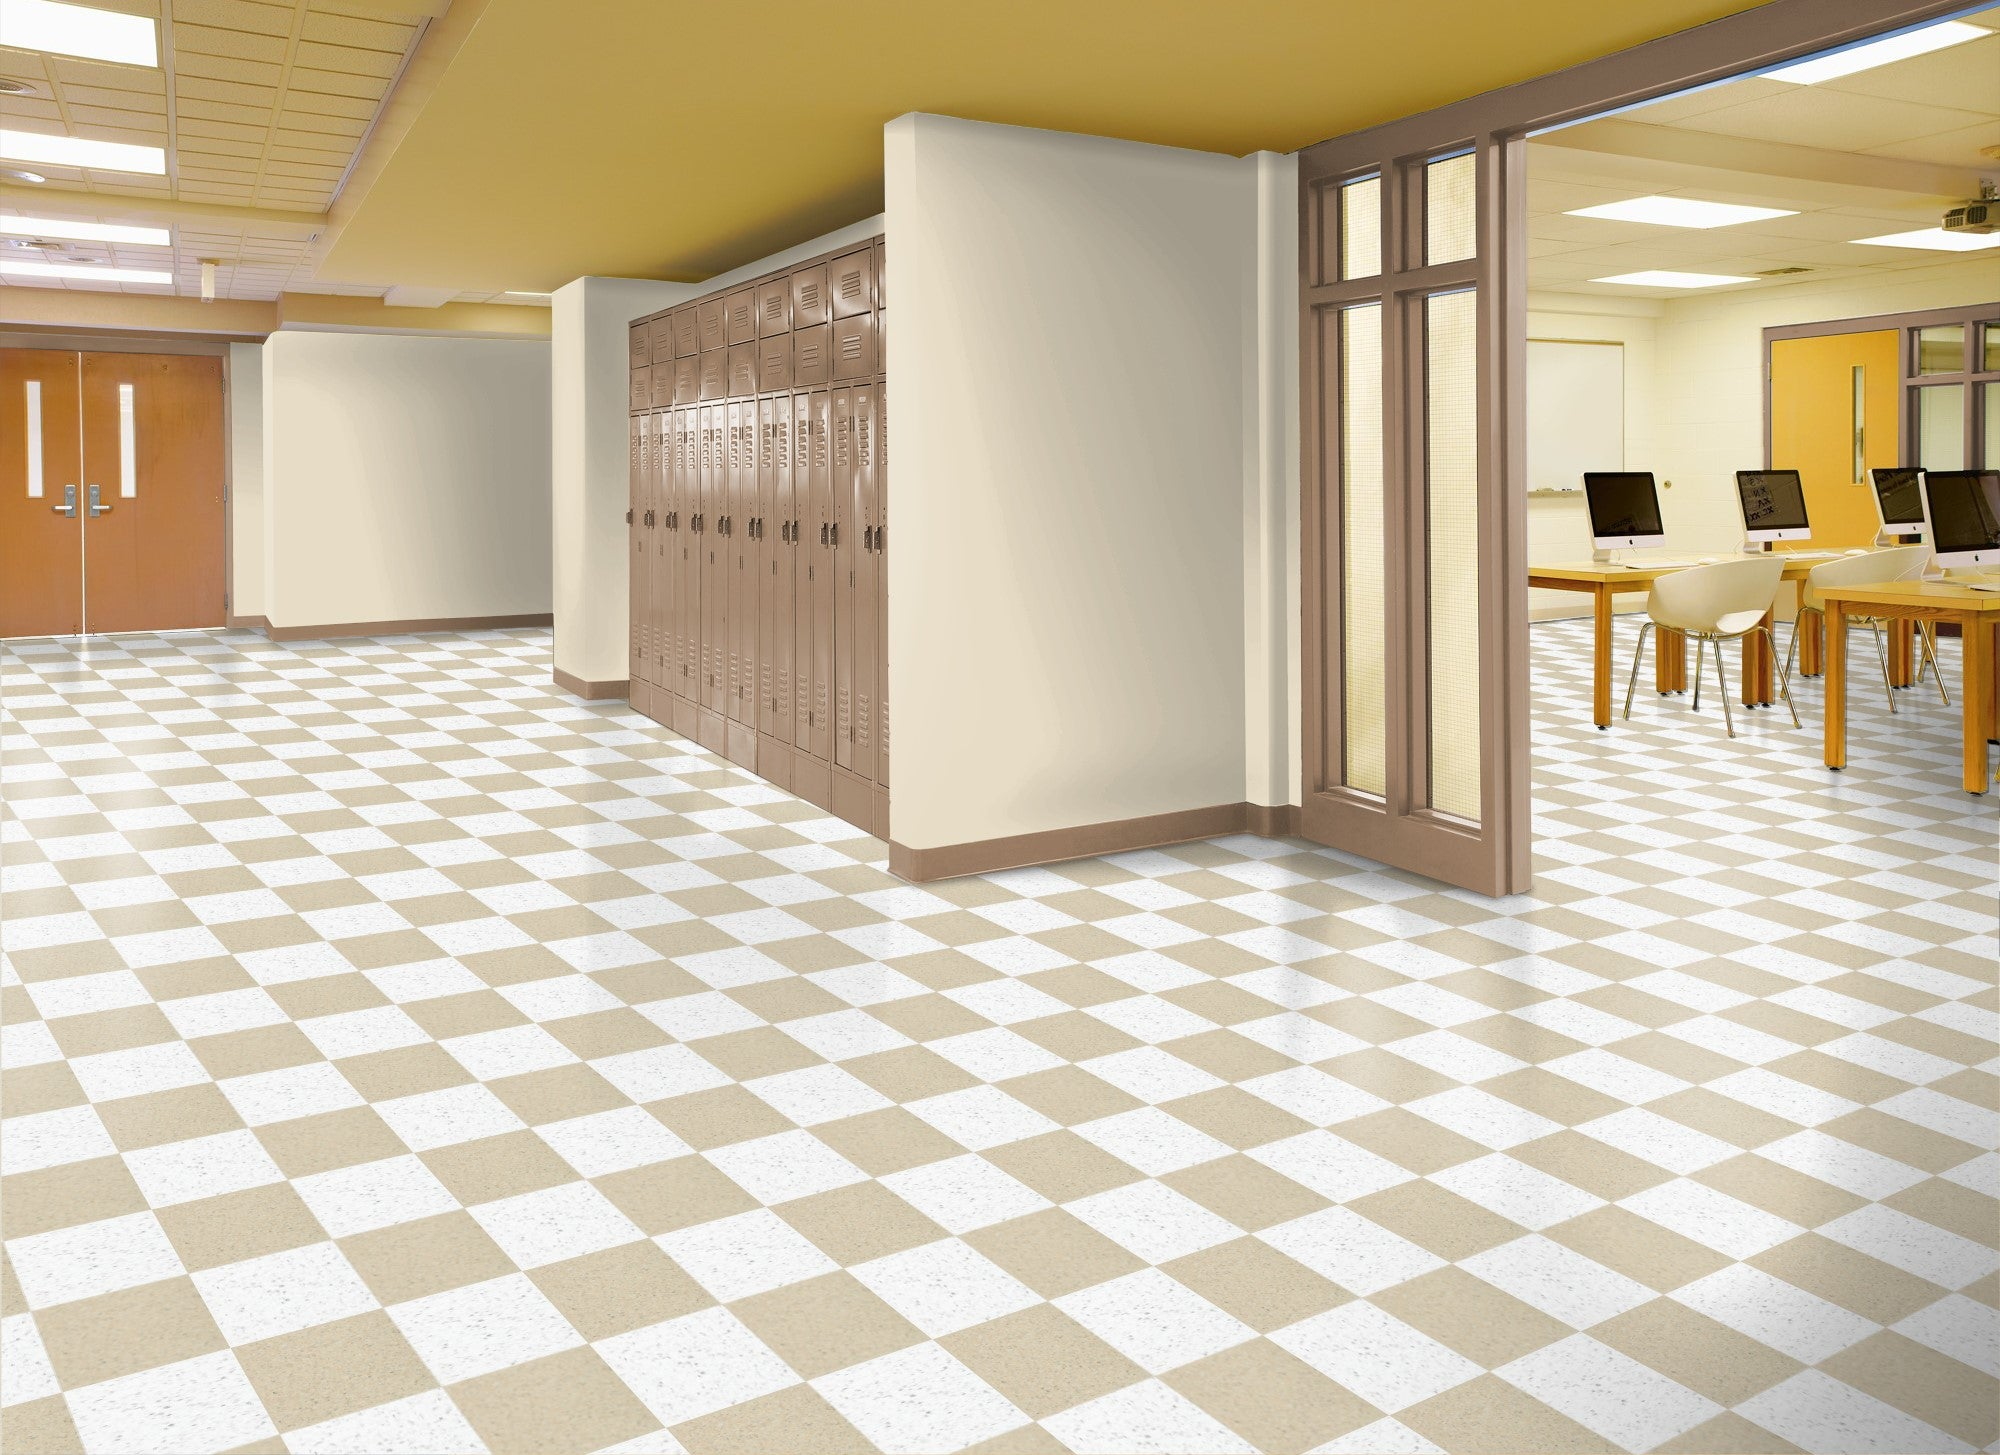 Educational Floor Ideas: School Flooring, Classroom ...